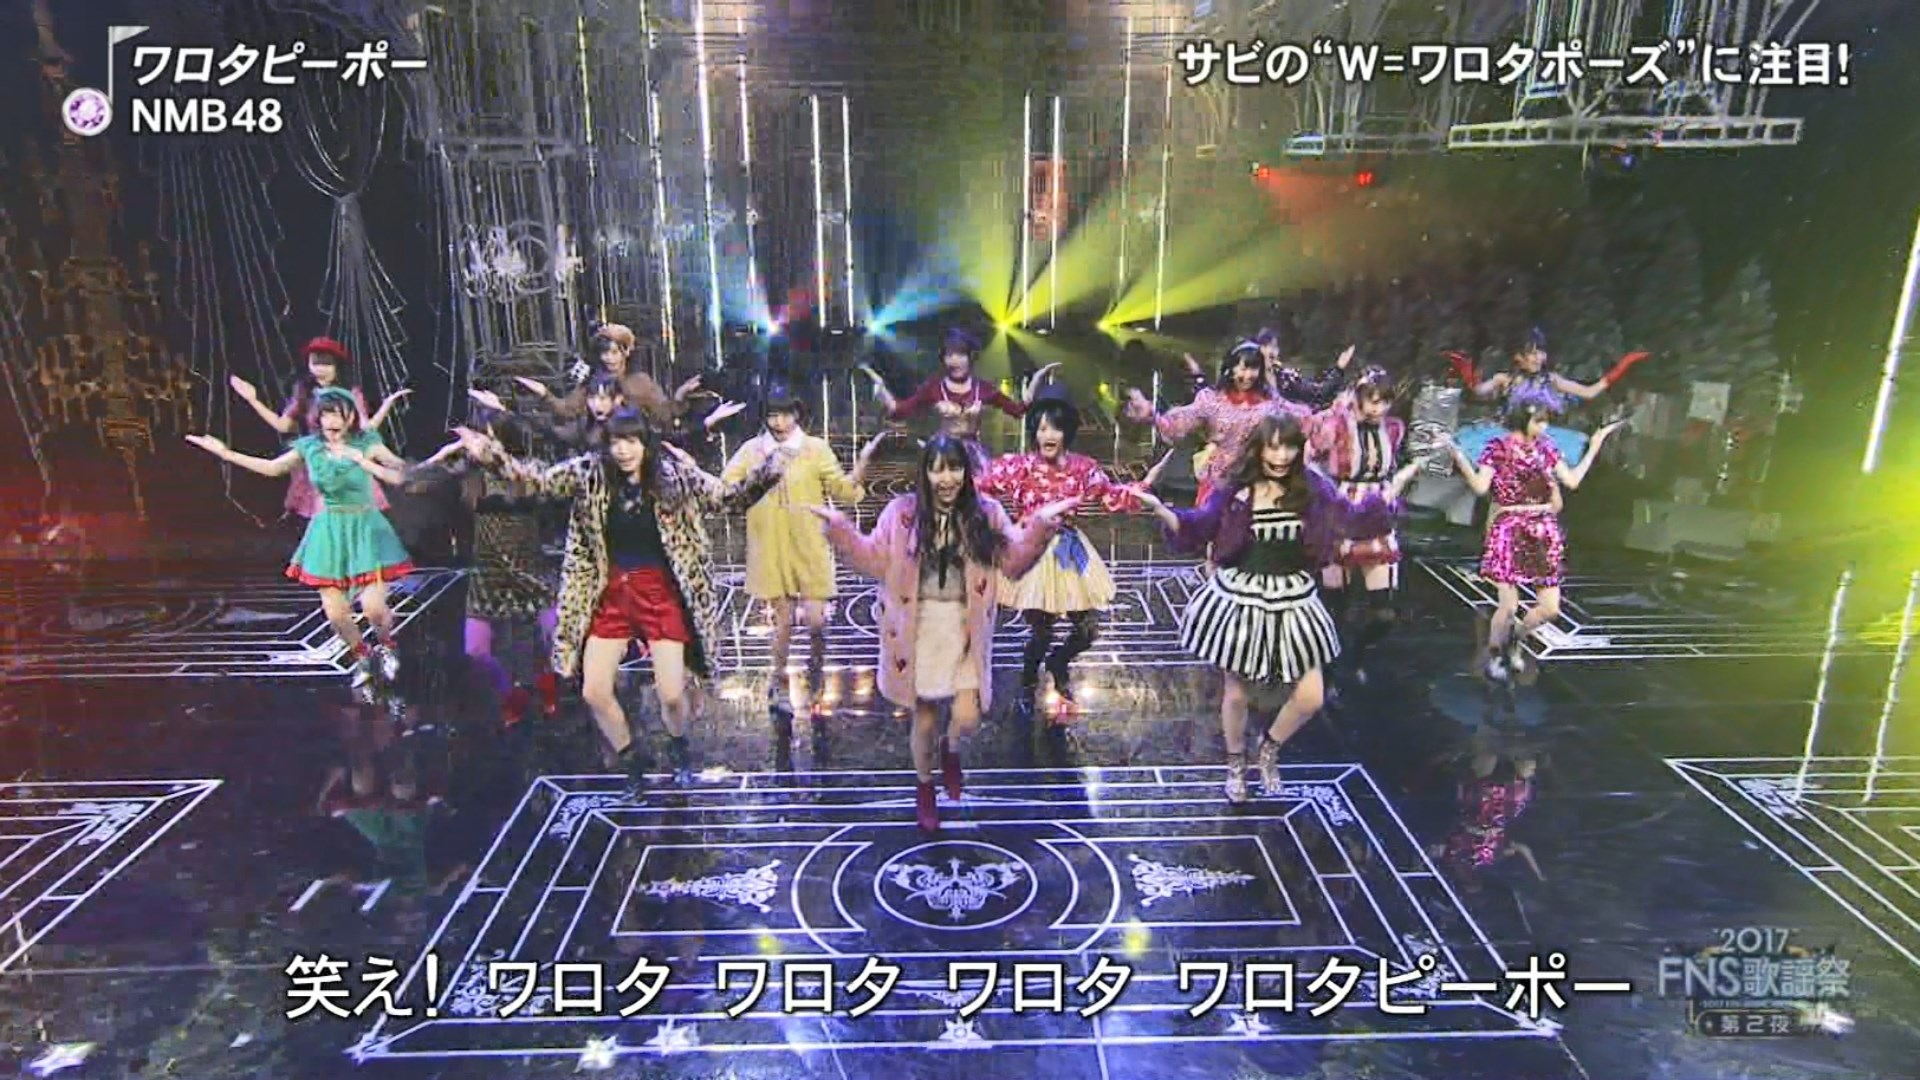 2017FNS歌謡祭第2夜・NMB48ワロタピーポーキャプ-055